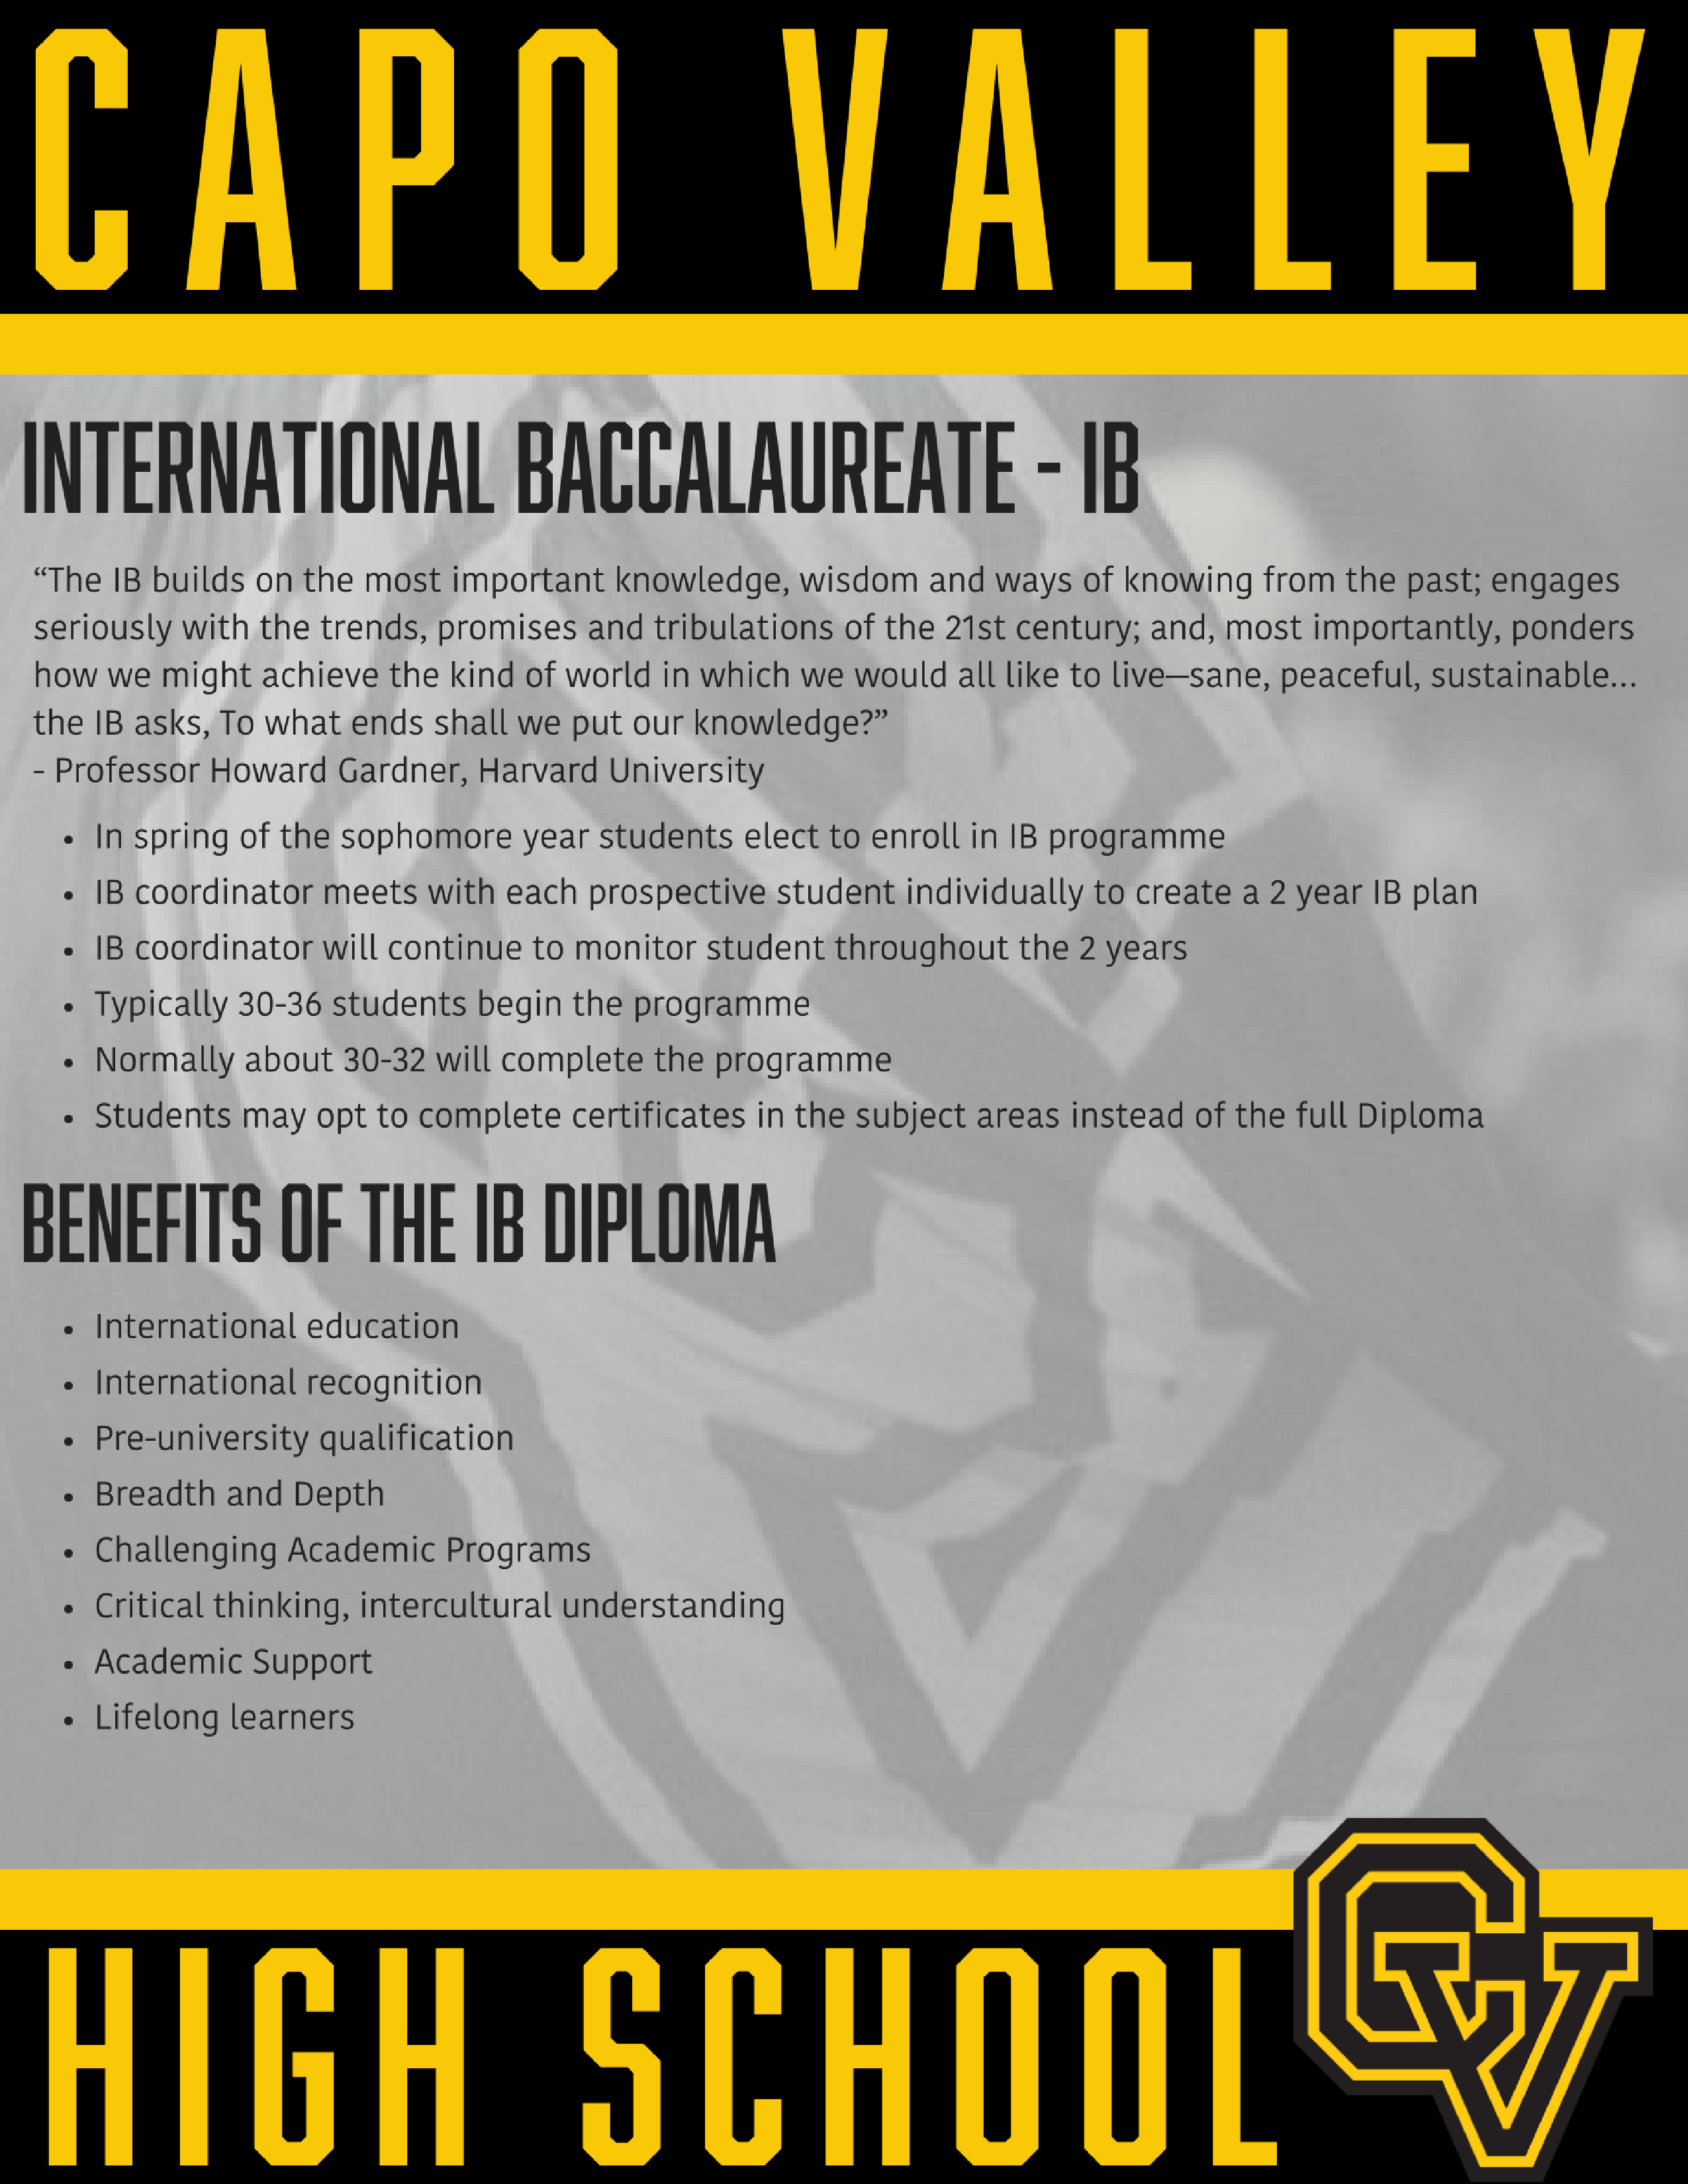 Capistrano Valley High School is home to a full International Baccalaureate  Diploma Program. Come see why Capistrano Valley High School is the Premier high  school in Orange County.International education International recognition  Pre-university qualification Breadth and Depth Challenging Academic Programs  Critical thinking, intercultural understanding Academic Support Lifelong  learners